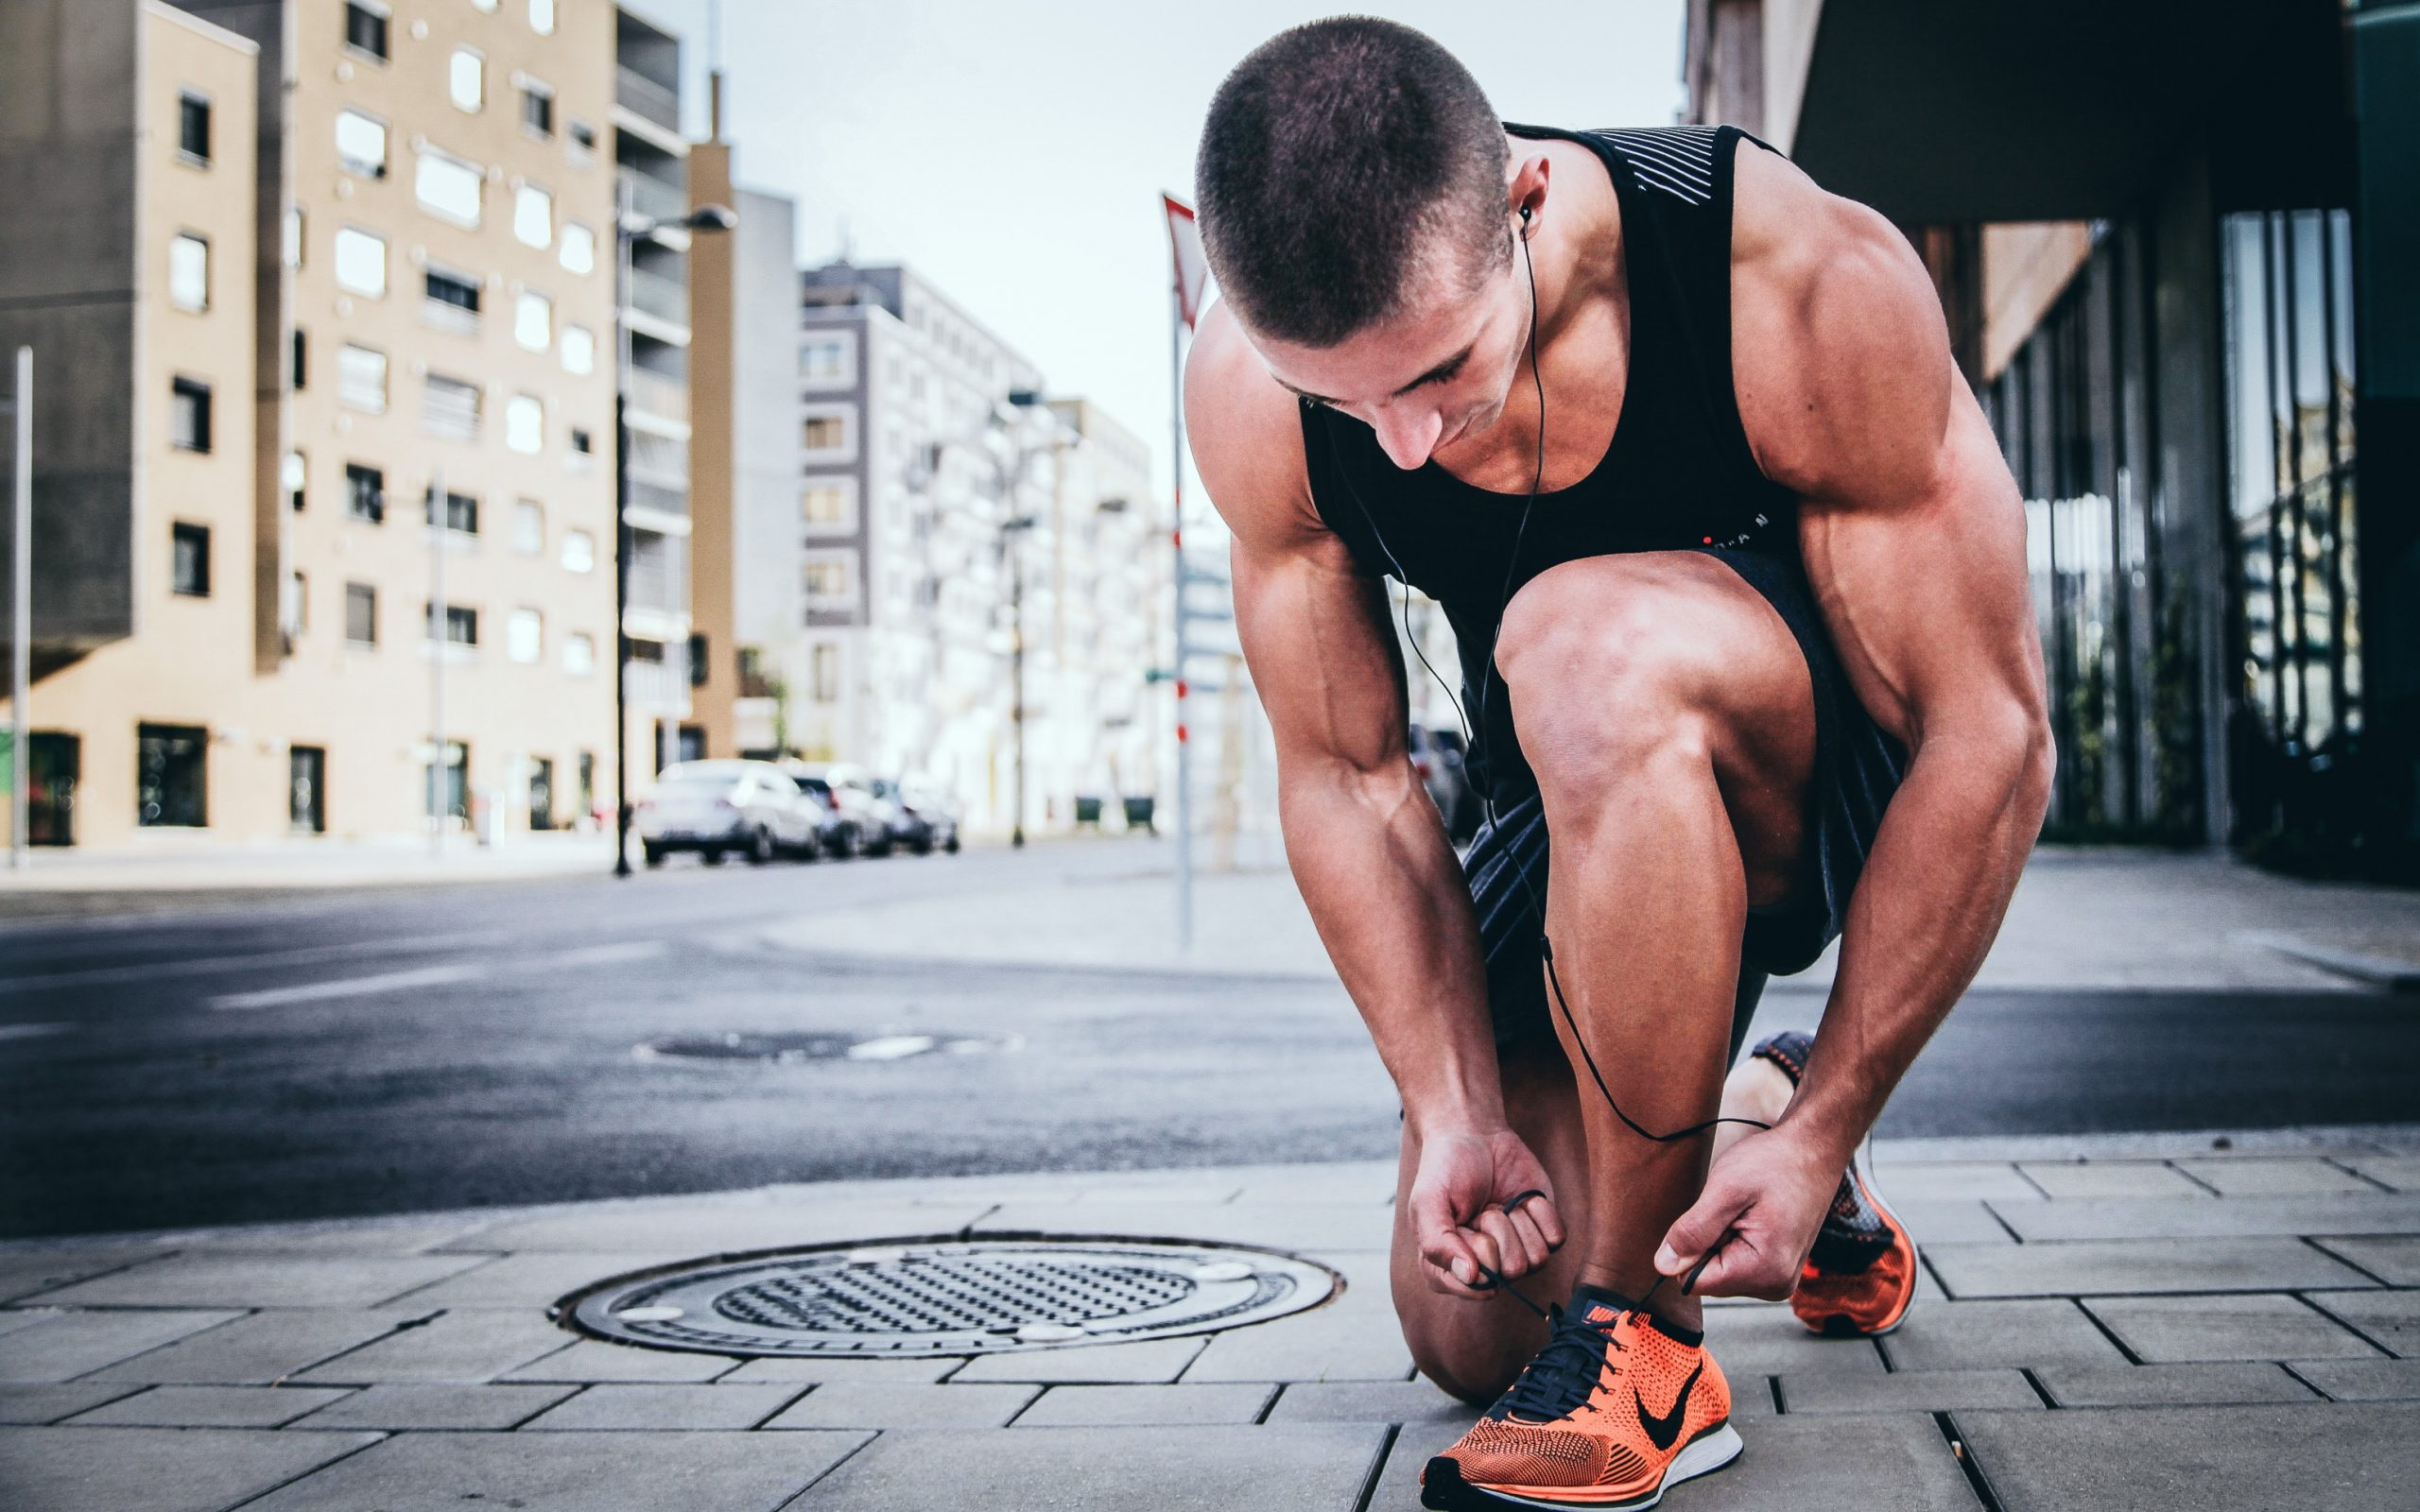 man kneeling to tie his running shoe while running in the streets